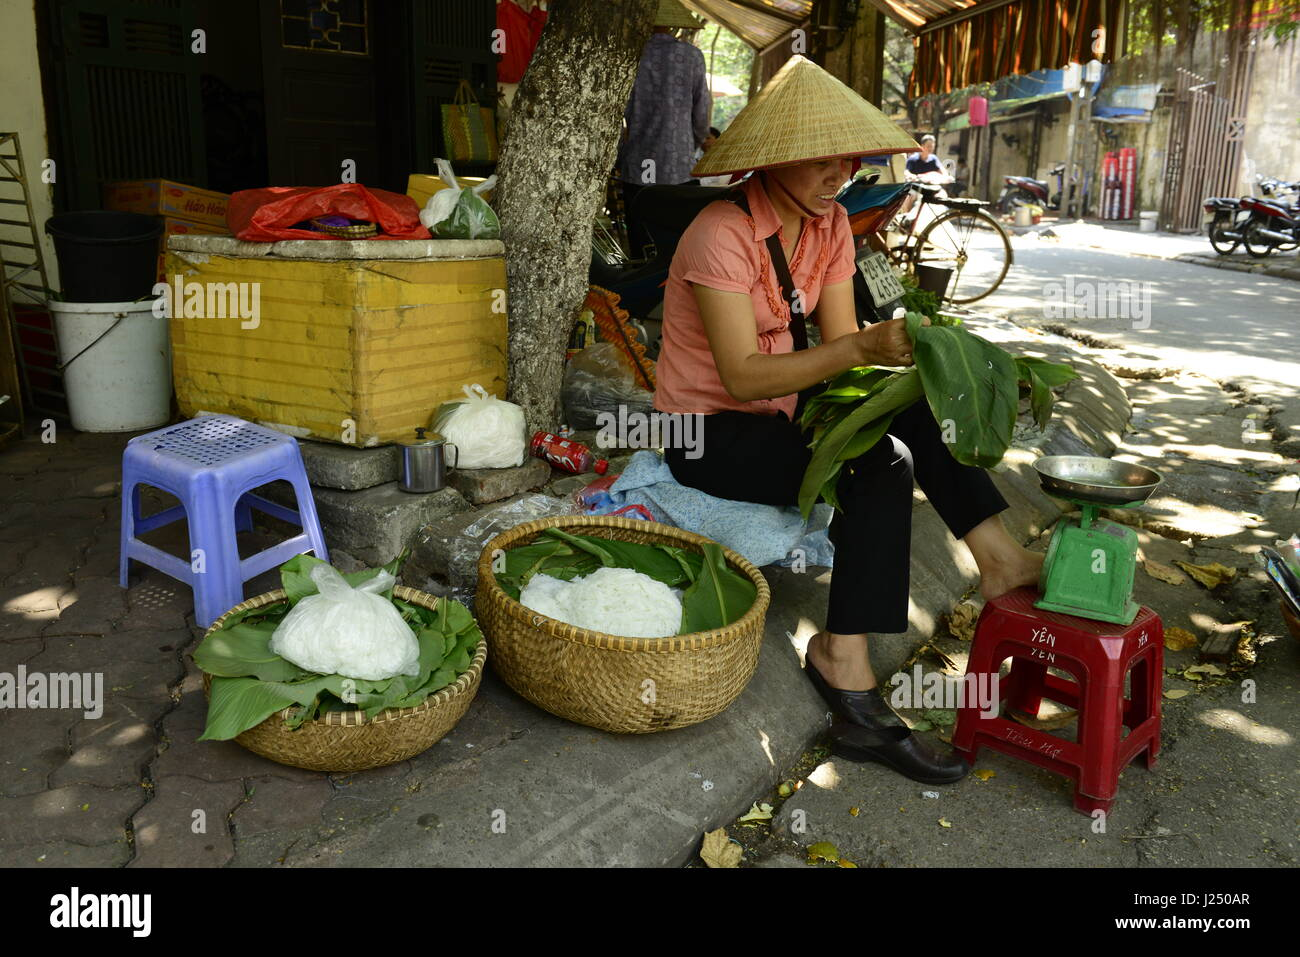 A Vietnamese woman selling traditional rice noodles ( Bún ) in Hanoi's old quarter. - Stock Image